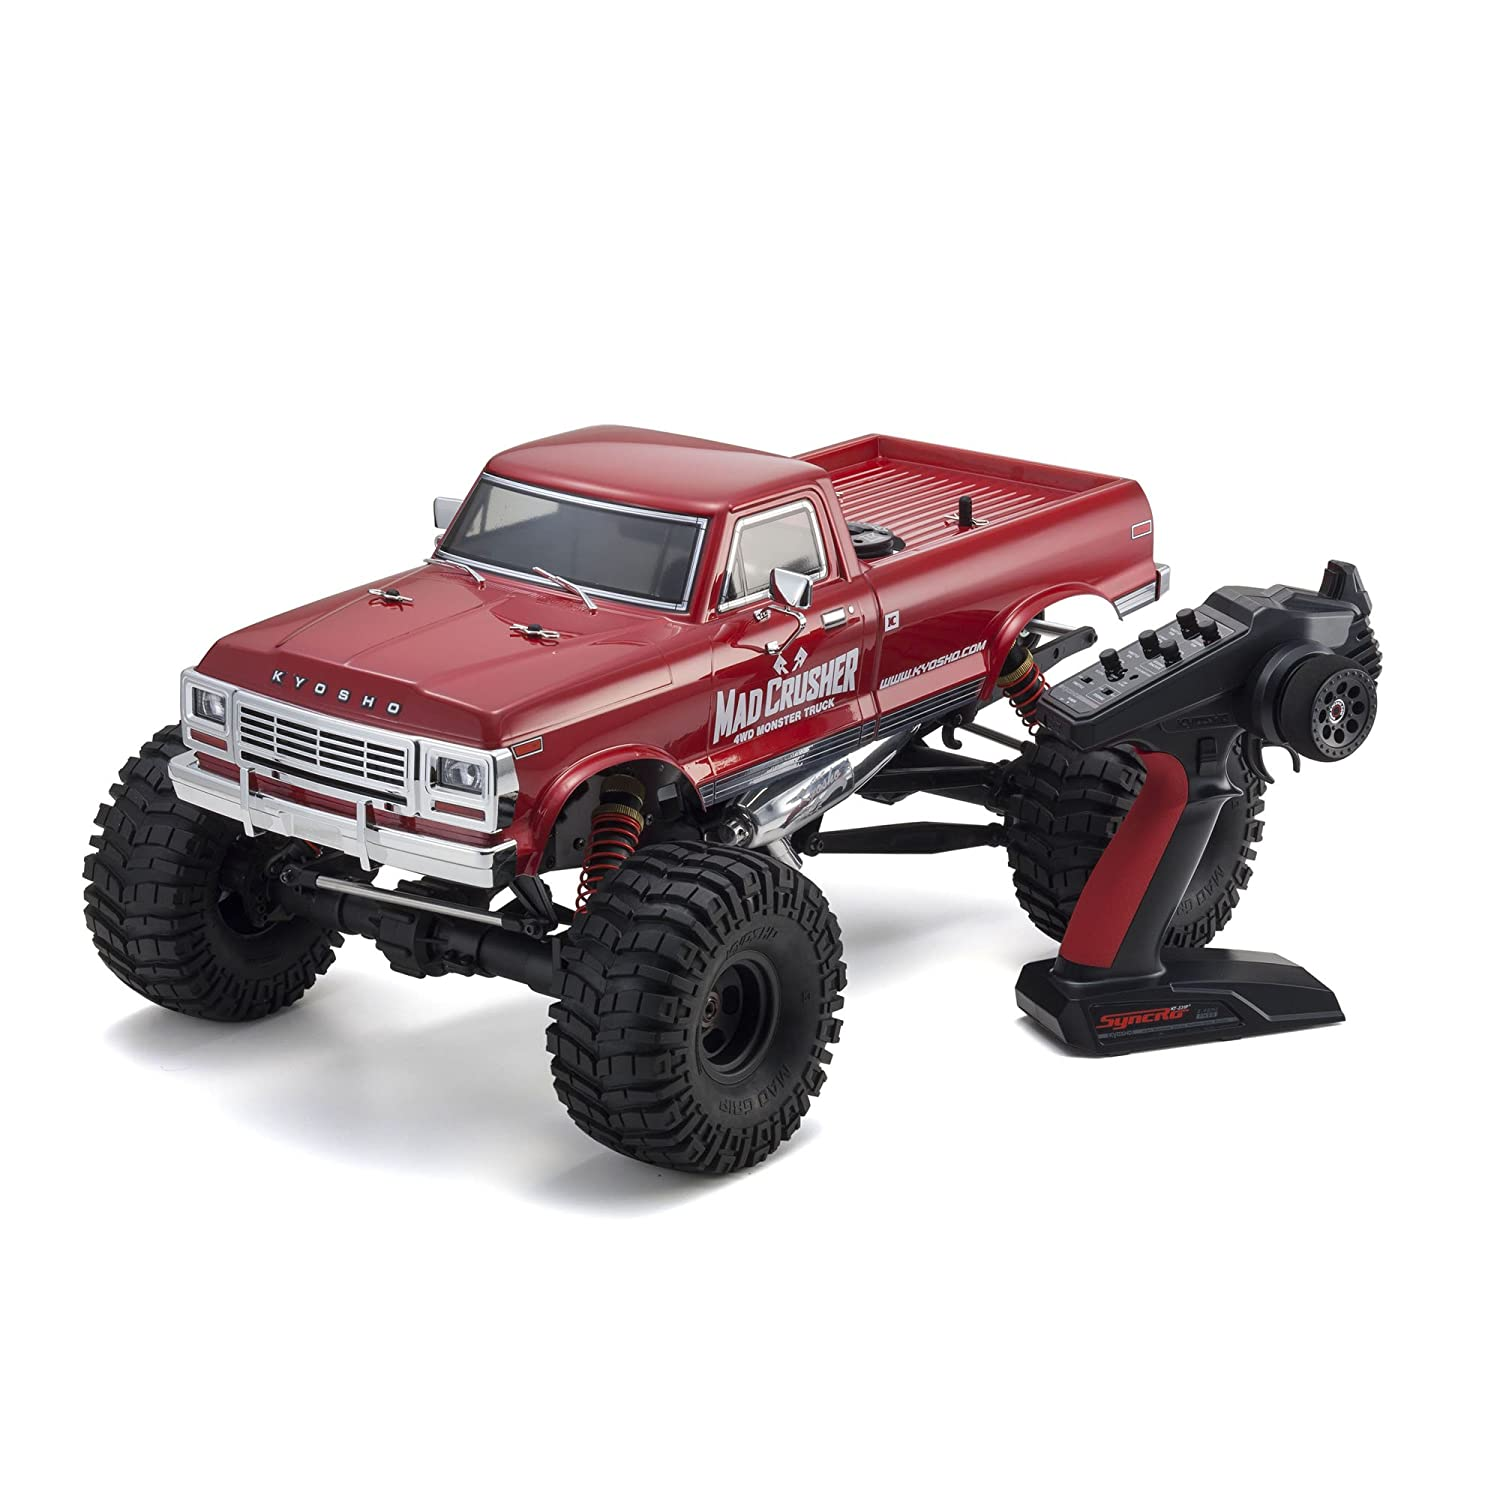 Kyosho Mad Crusher GP 4WD Nitro Powered RC Truck